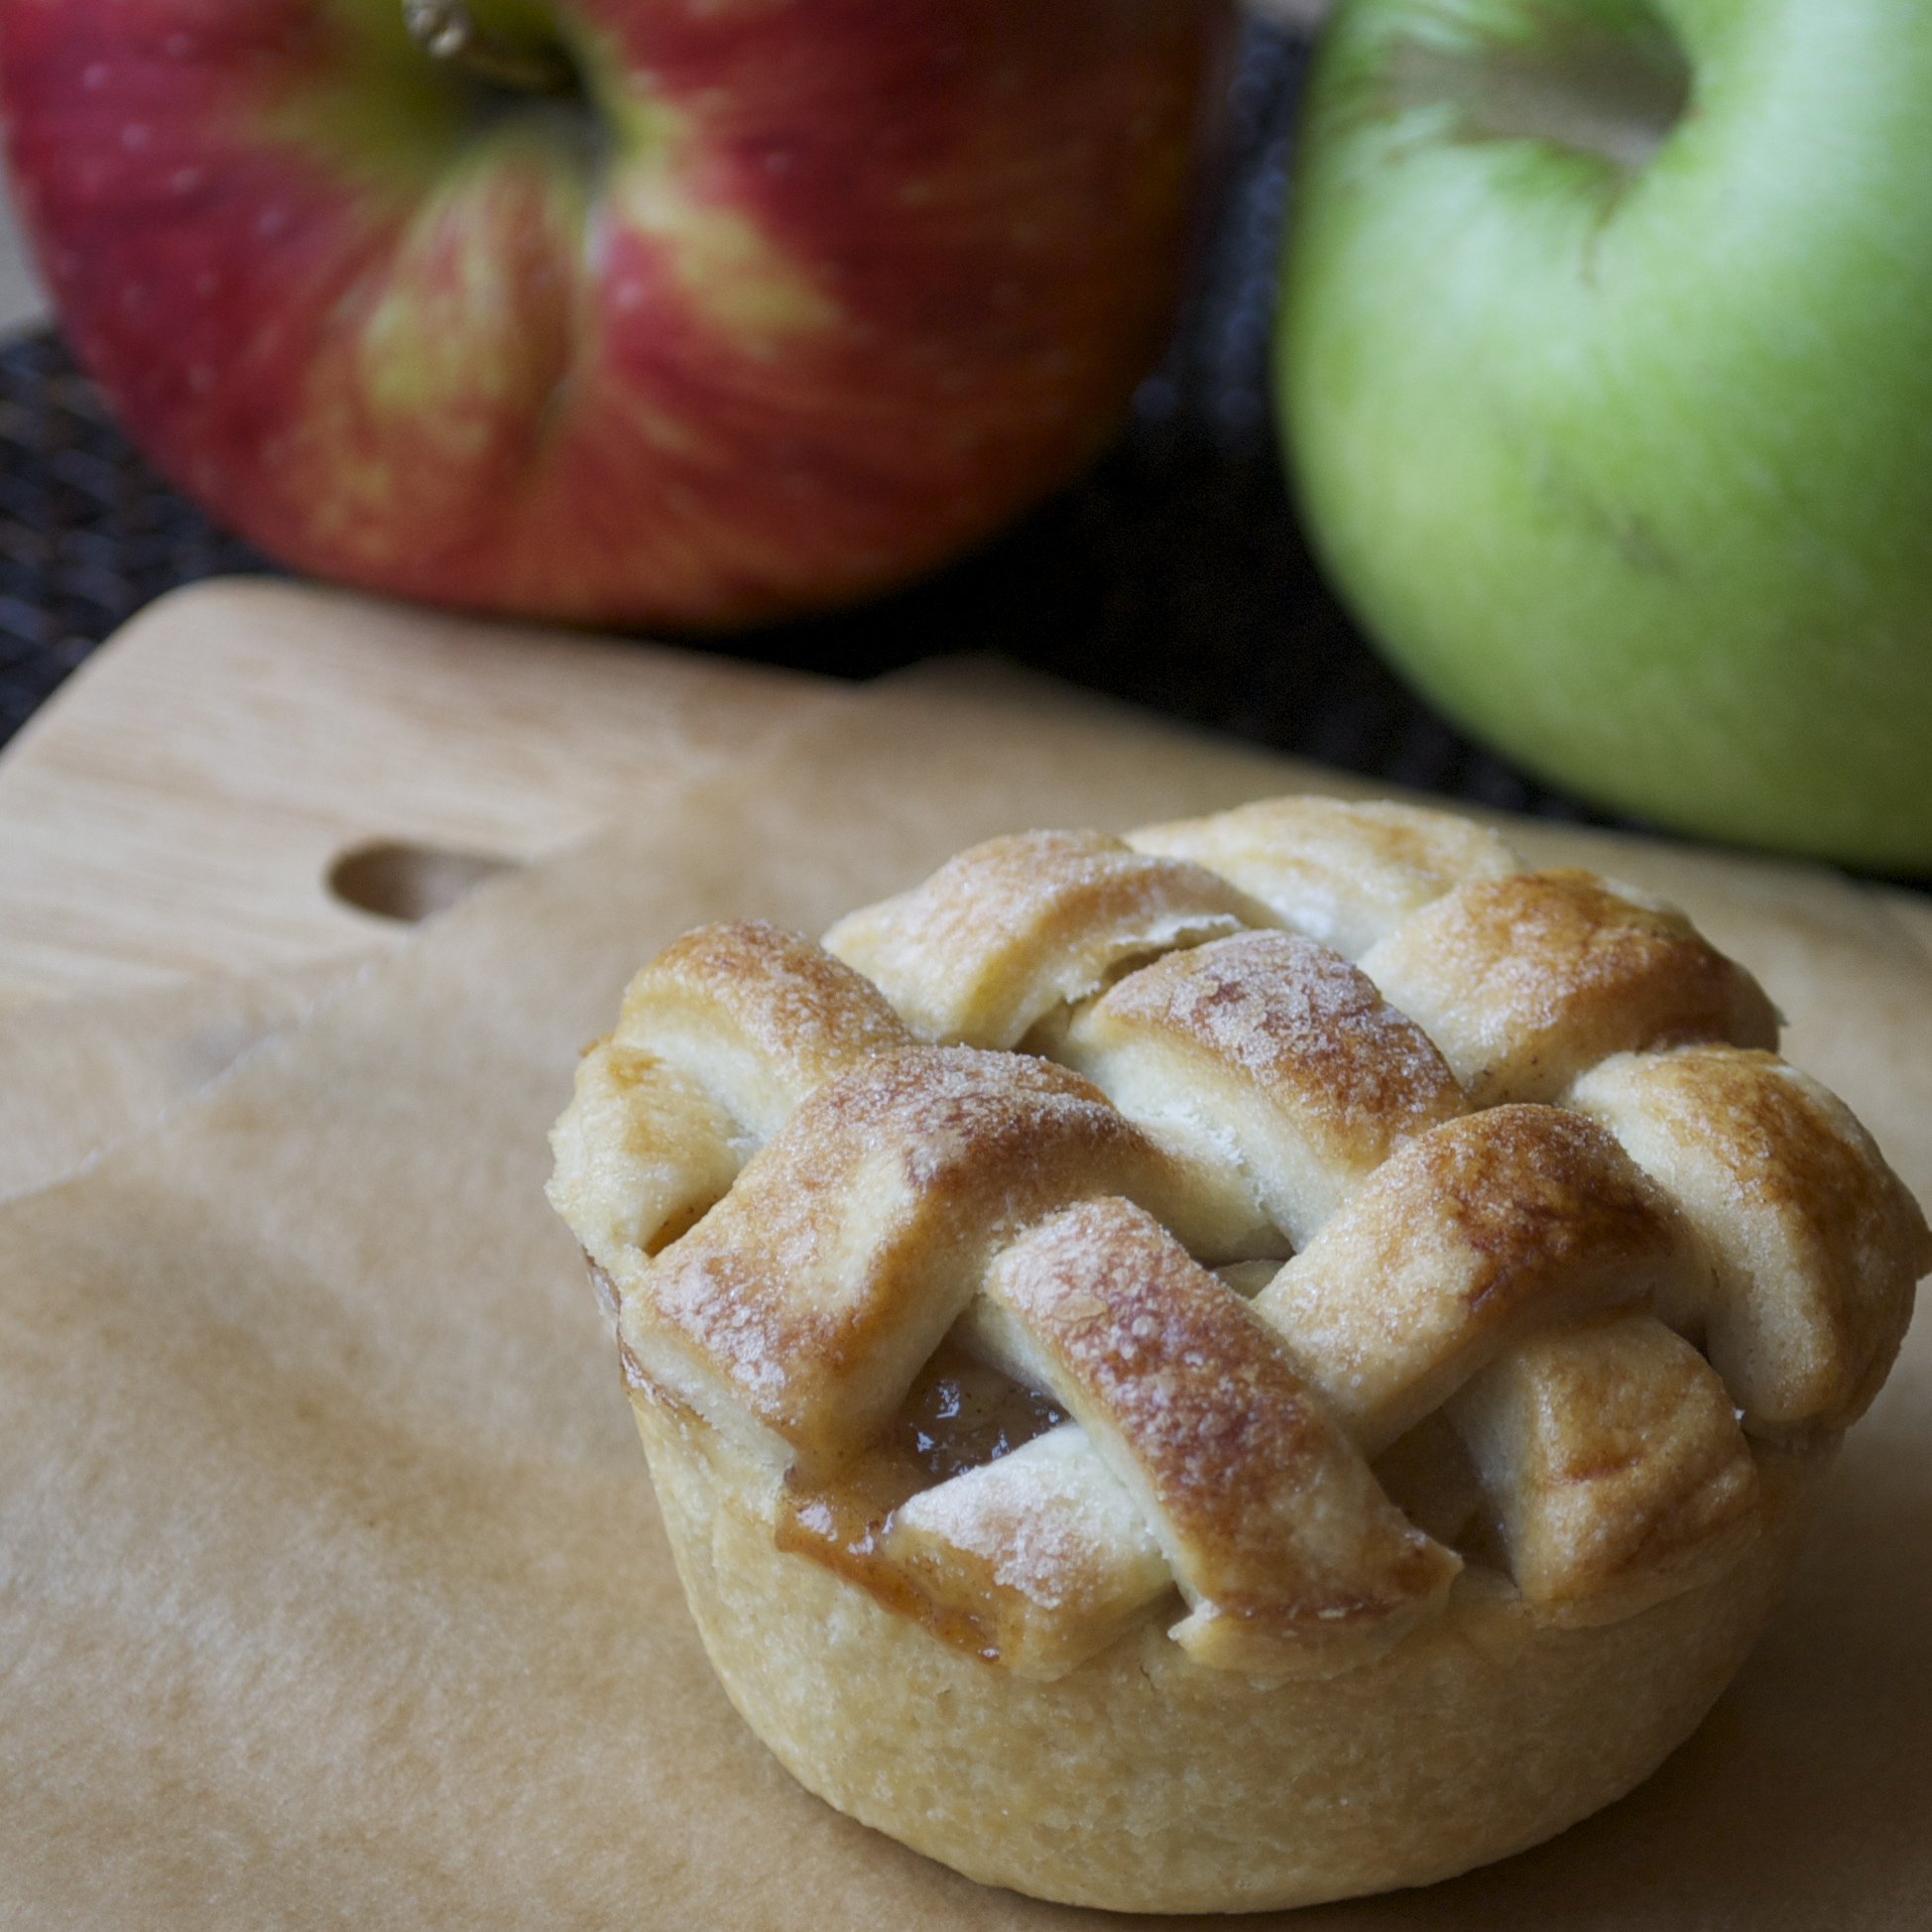 Marie Callender's Small Apple Pie combines apples, cinnamon, and sugar, all wrapped Products: Pot Pies, Bowls, Delights, Dinners, Large Desserts and more.